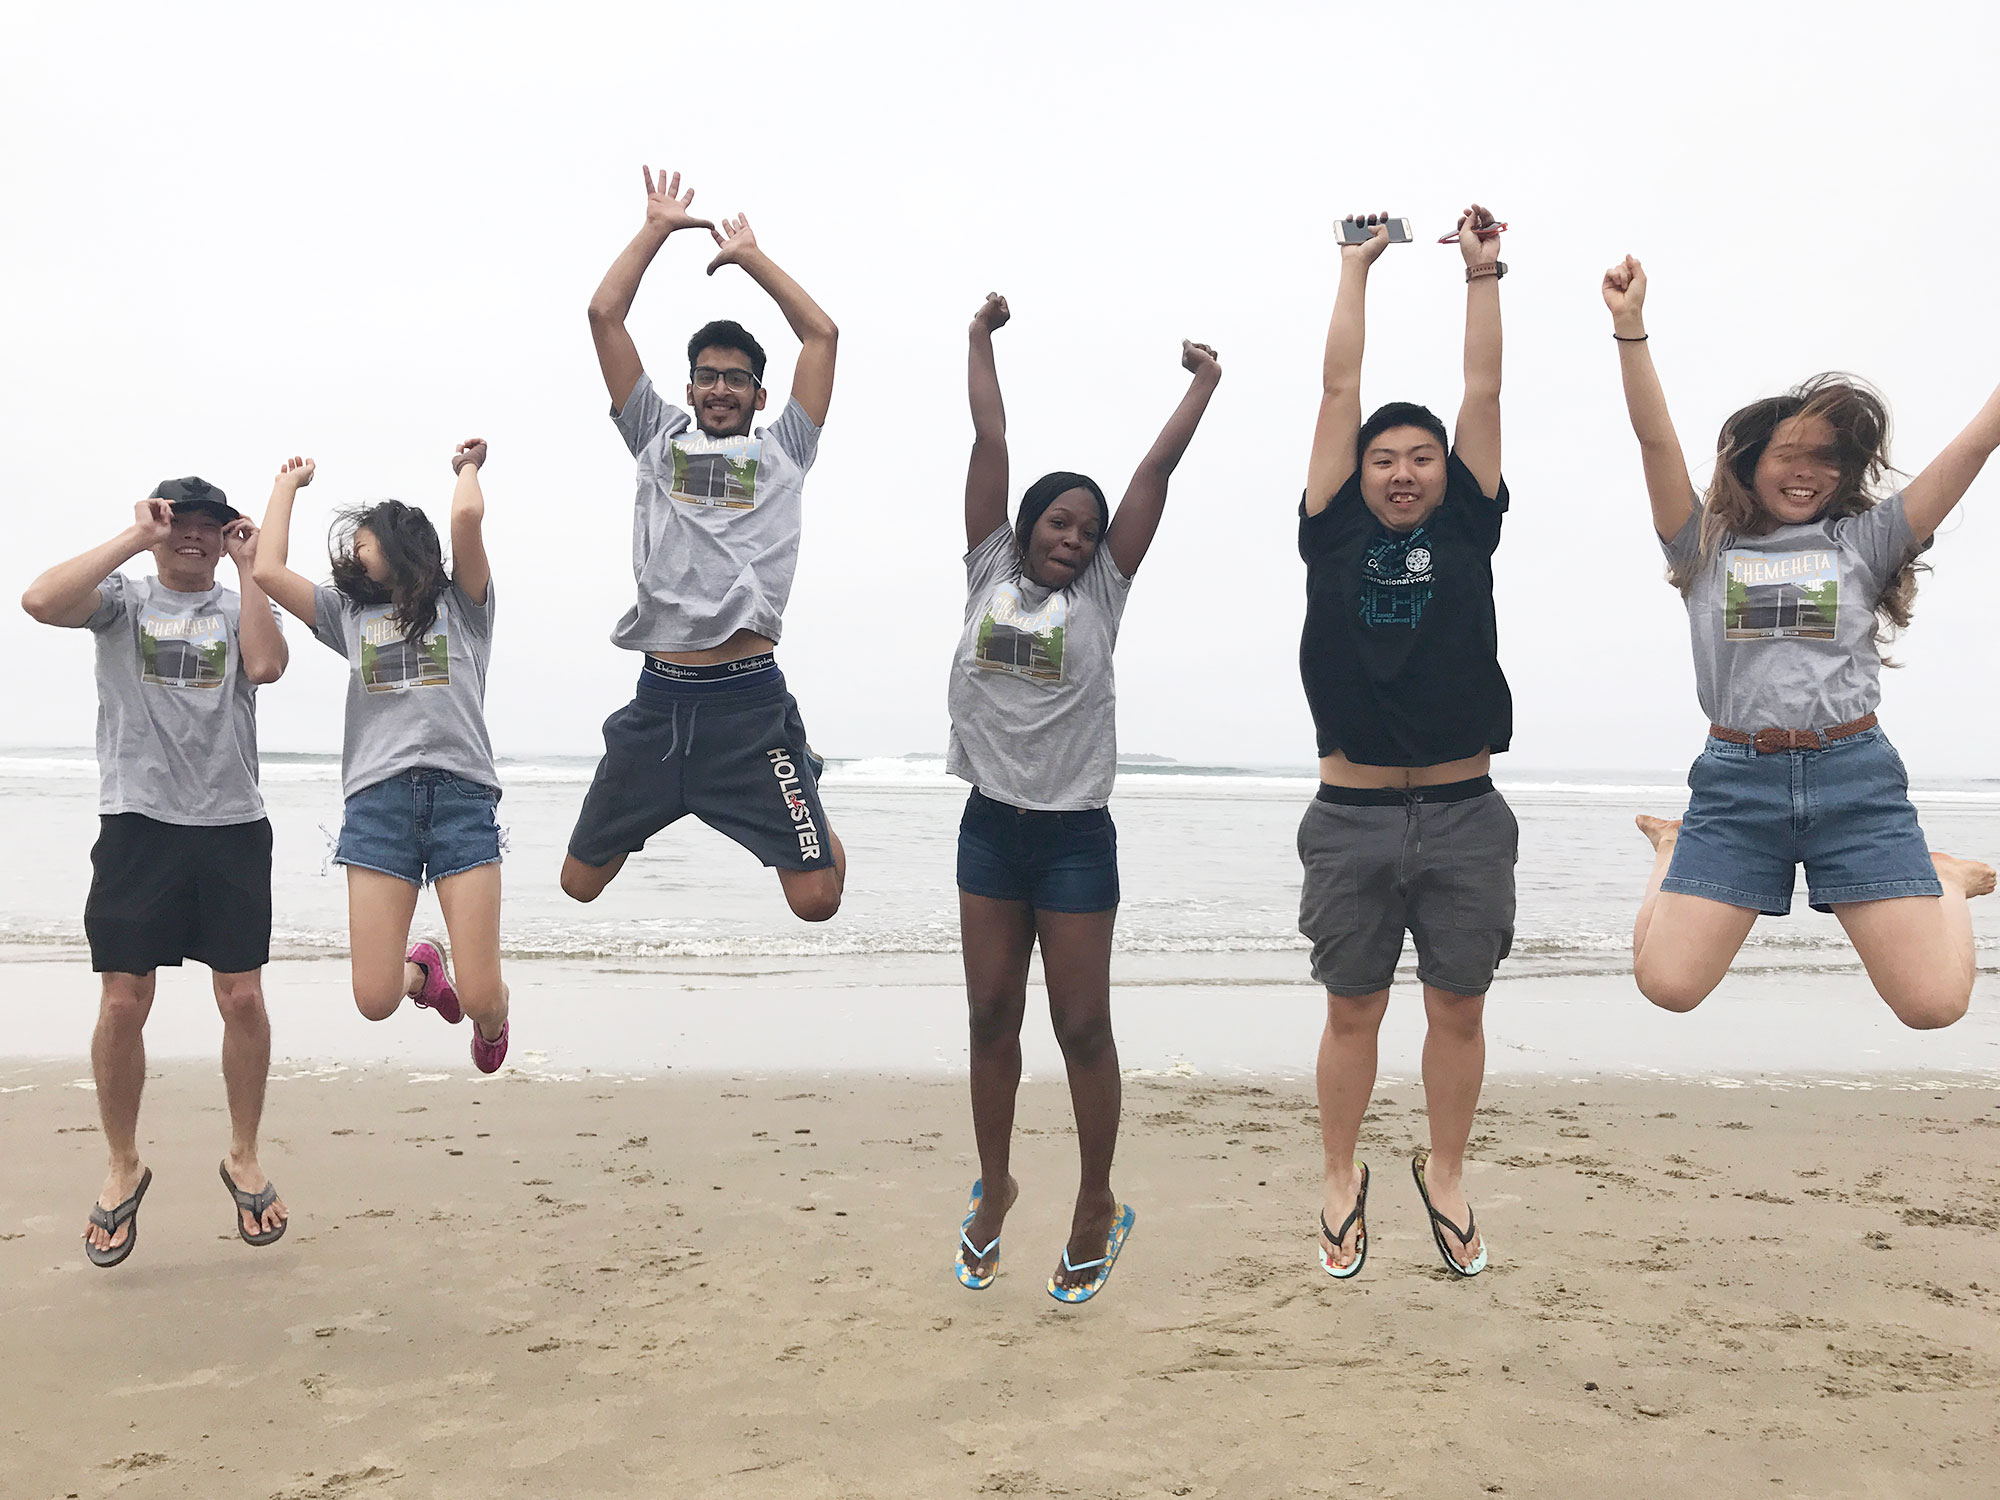 Students jumping in the air at the beach